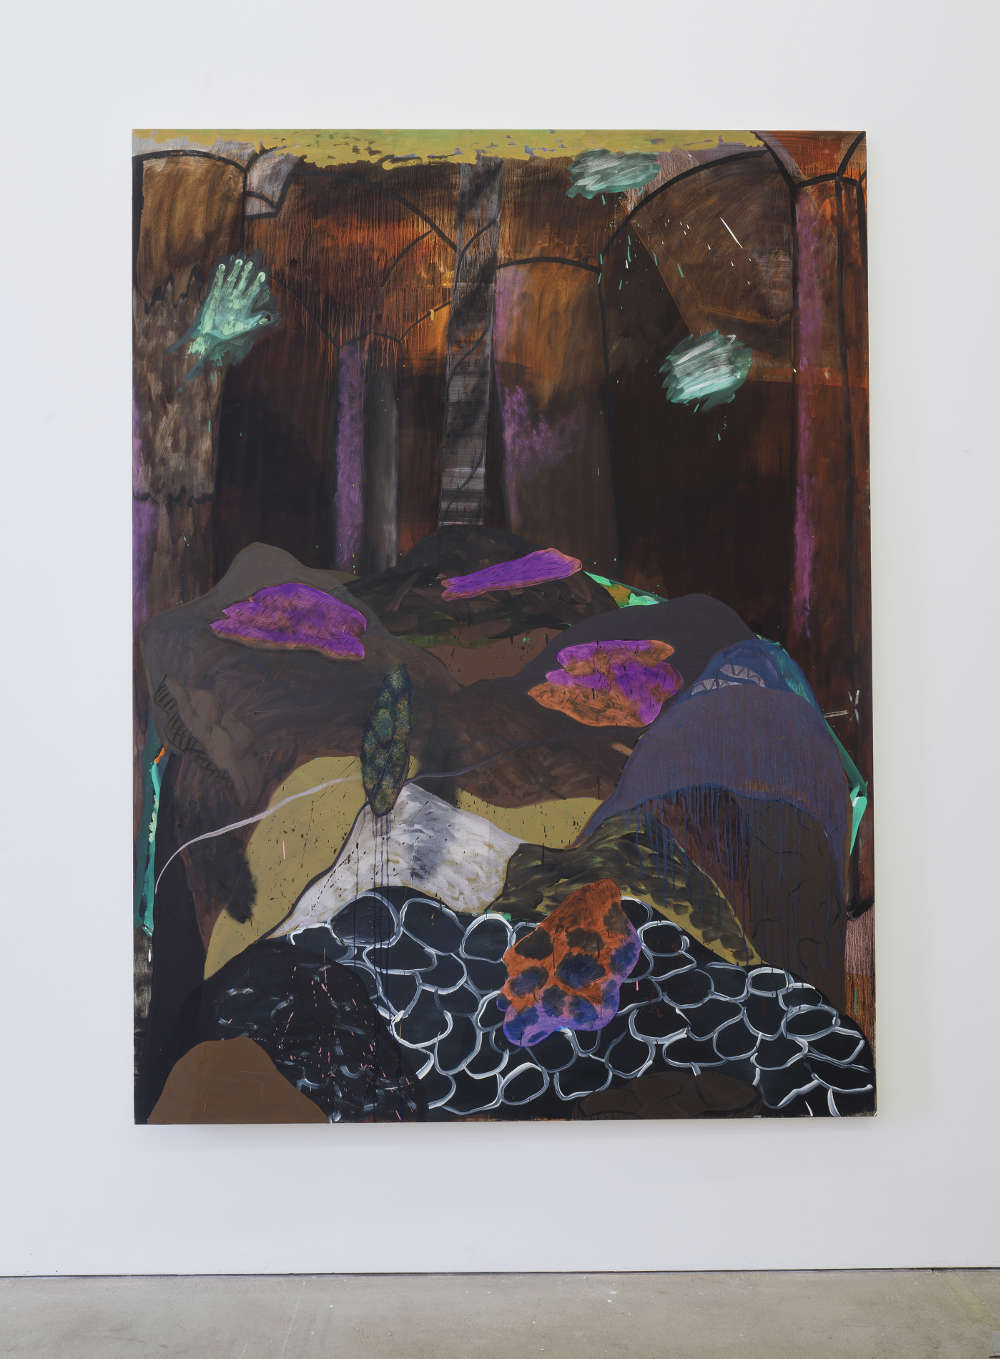 Alice Browne, Beneath[Before]/ FeS₂, 2018, acrylic andoil on canvas, 200x 150cm